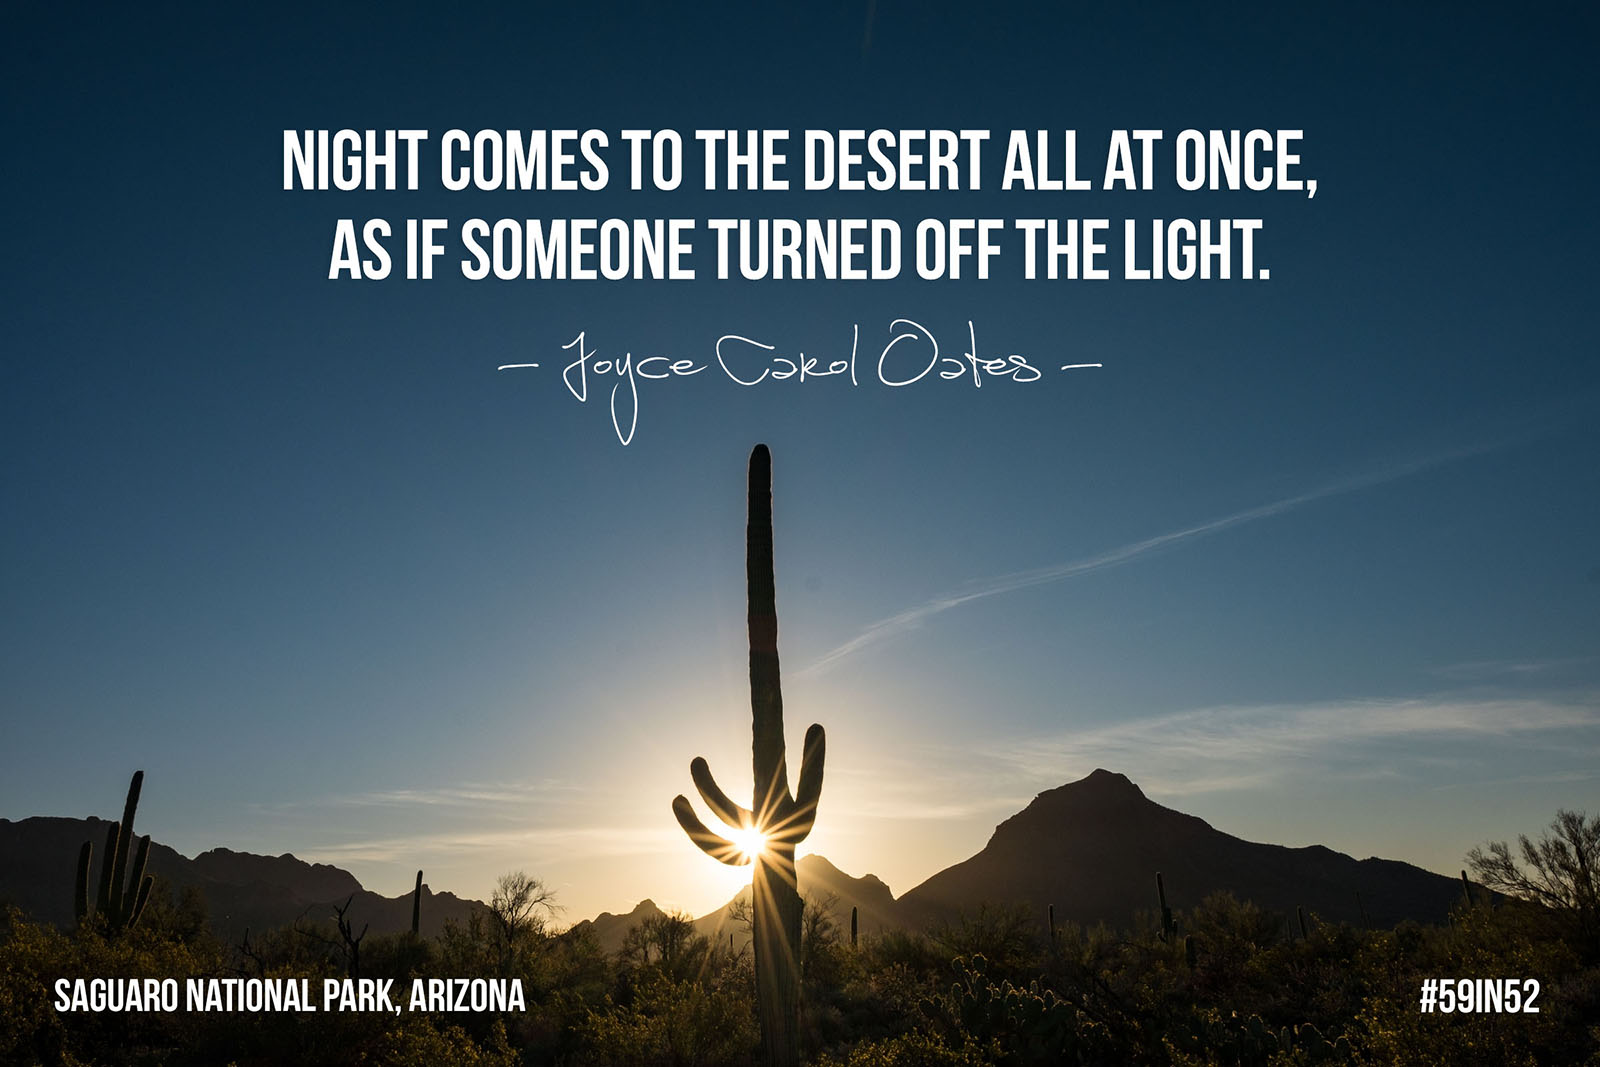 """Night comes to the desert all at once, as if someone turned off the lights."" - Joyce Carol Oates"